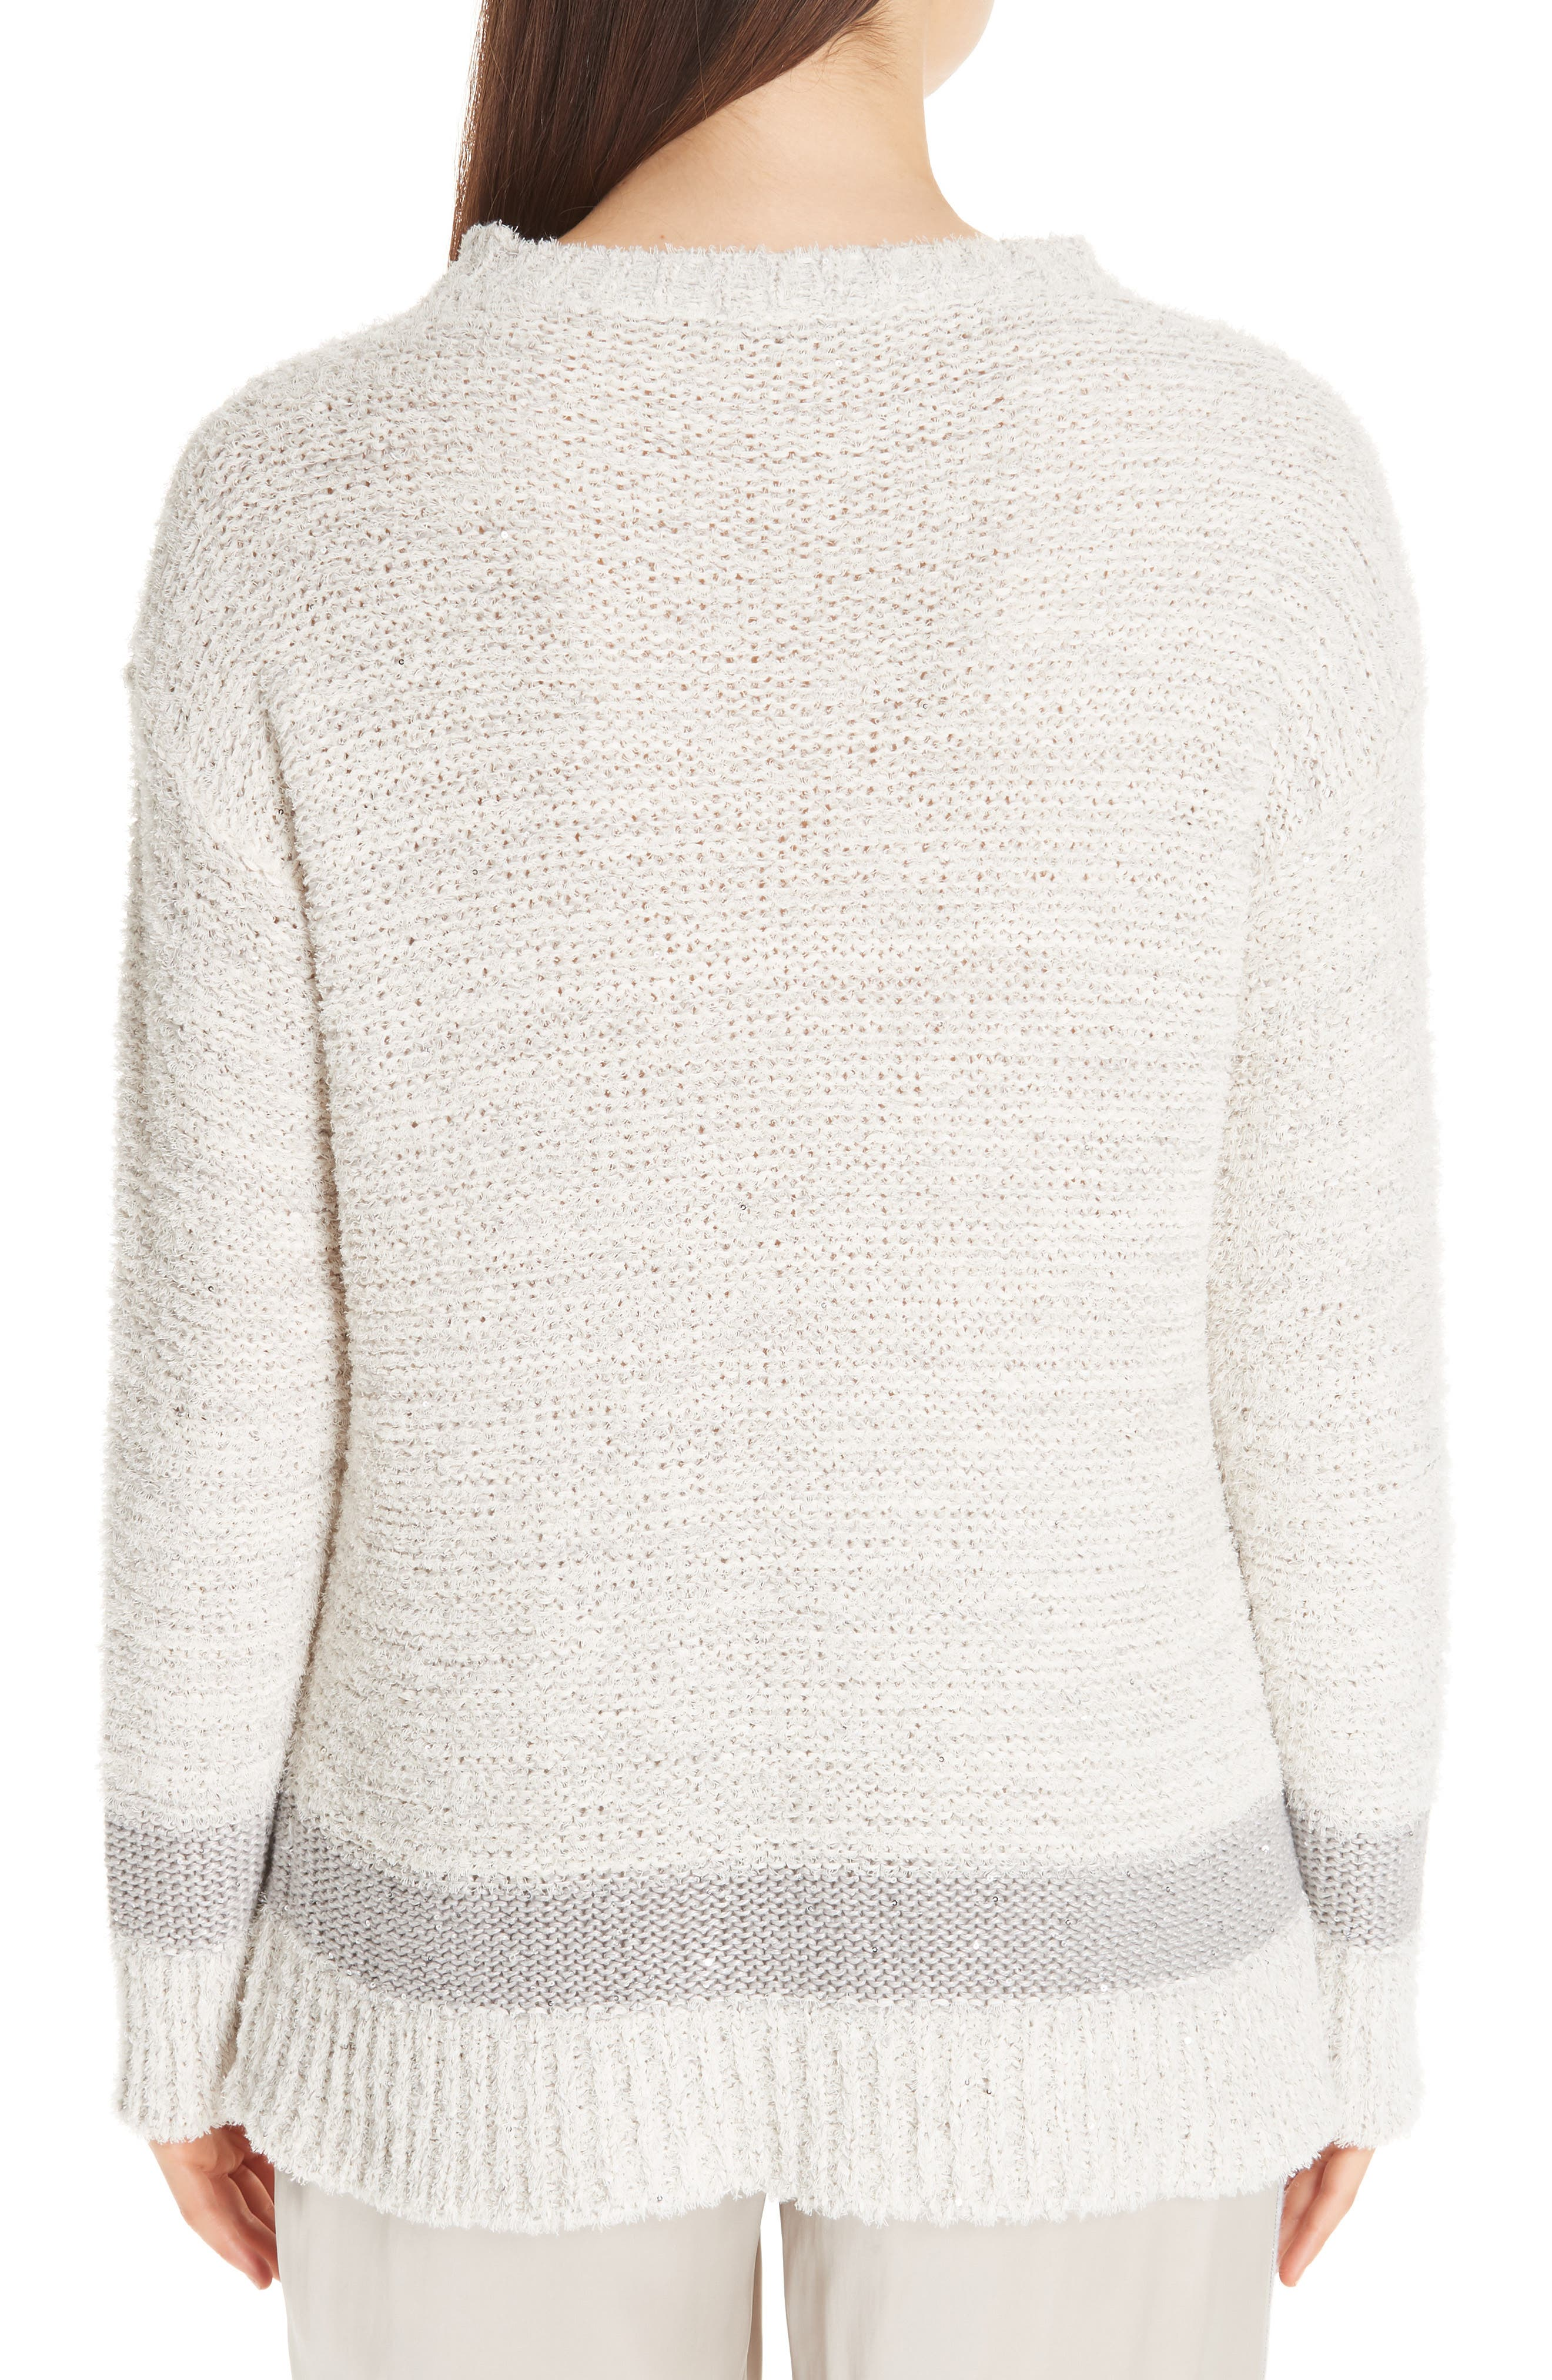 Sequin Knit Sweater,                         Main,                         color, BEIGE